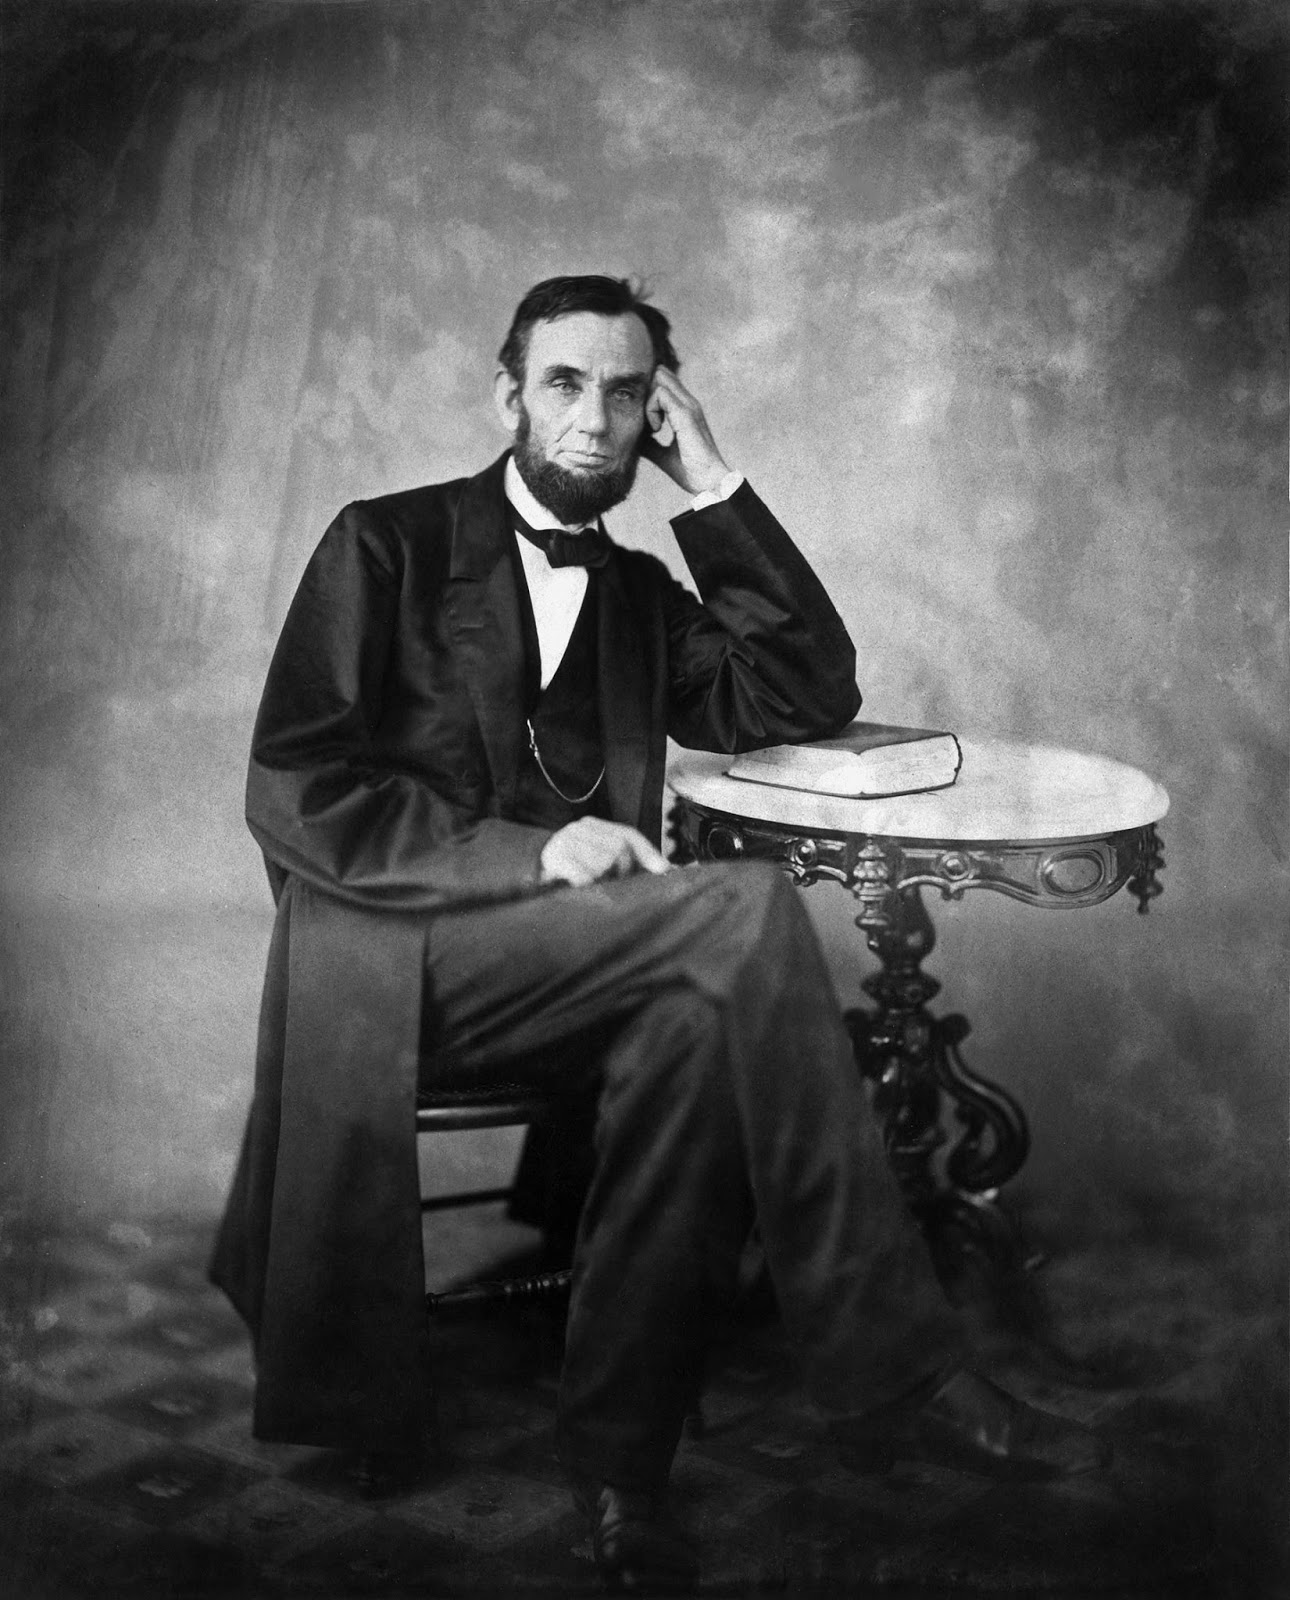 abraham lincoln in the civil war The civil war of america was a major conflict in american history, the president at the time abraham lincoln was on the front of the war, he was the face of the nation no doubt to be in.